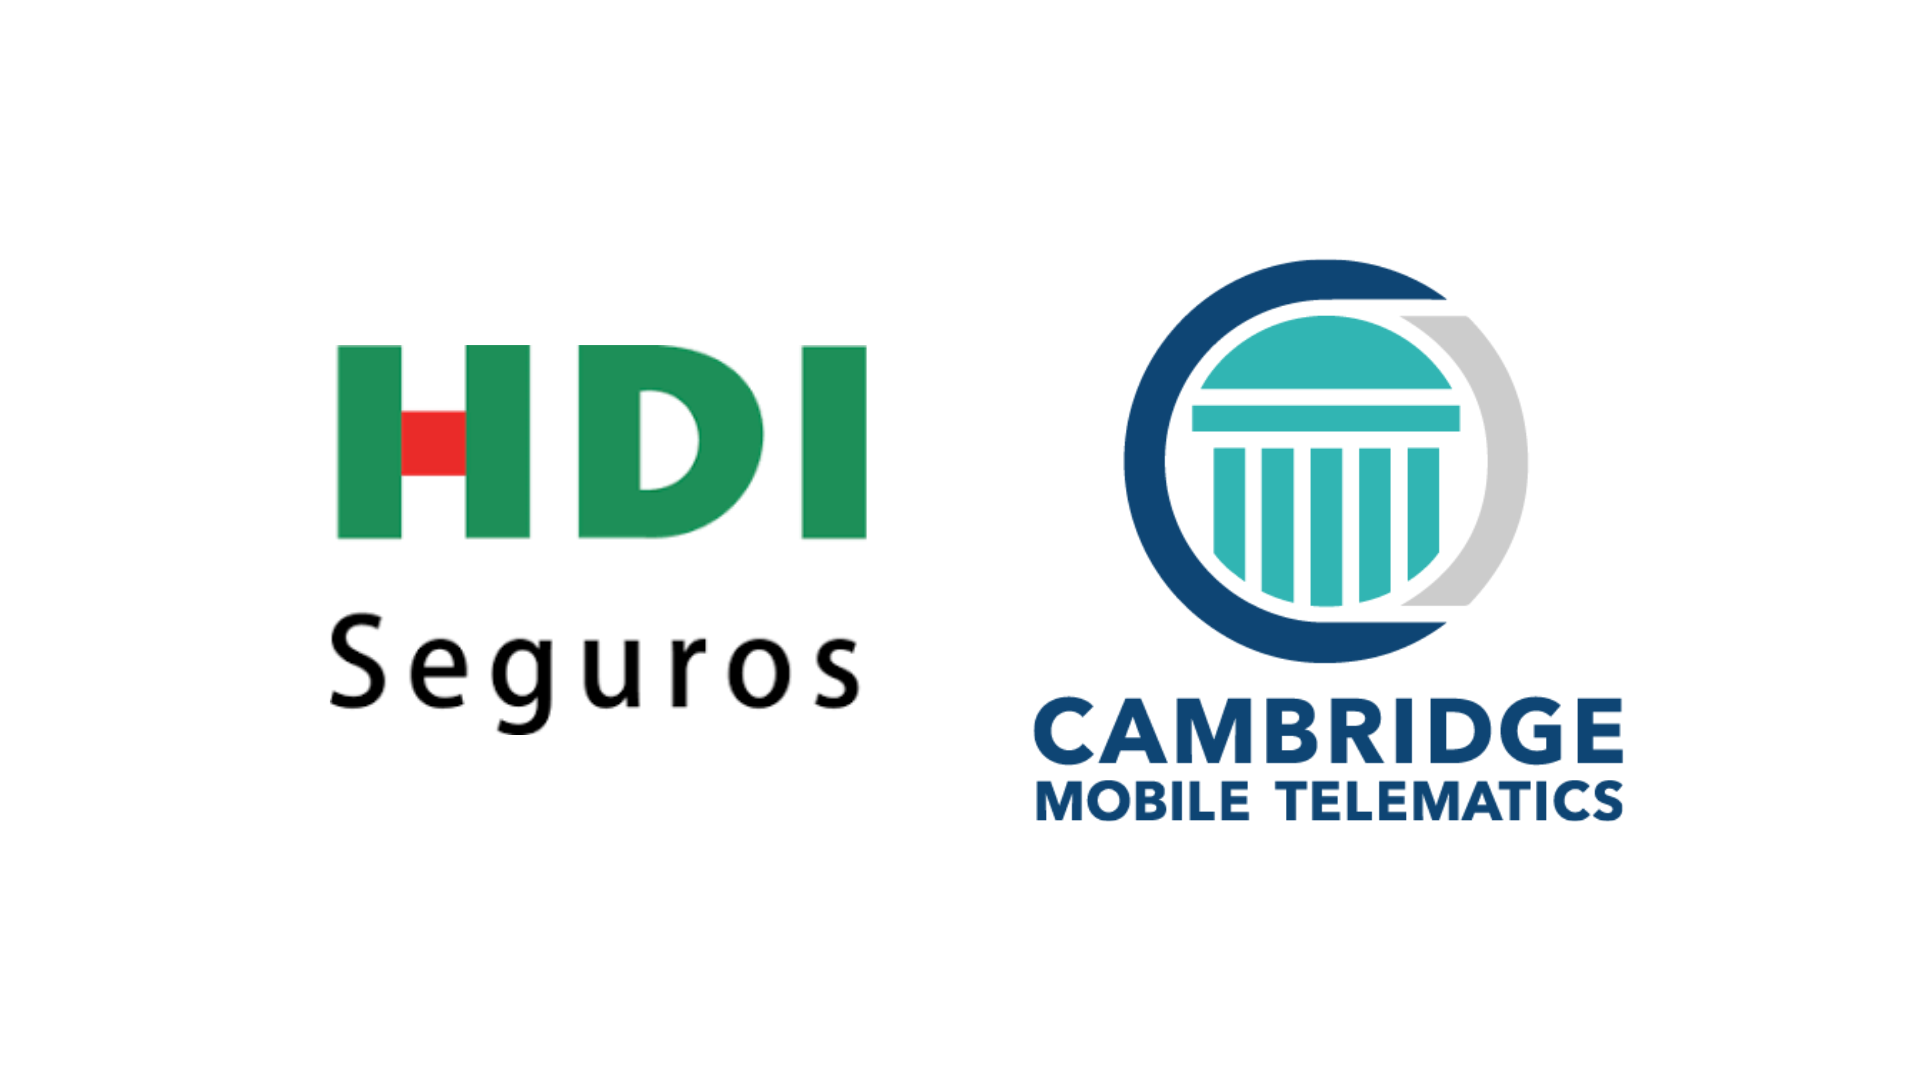 CMT partners with HDI SEGUROS